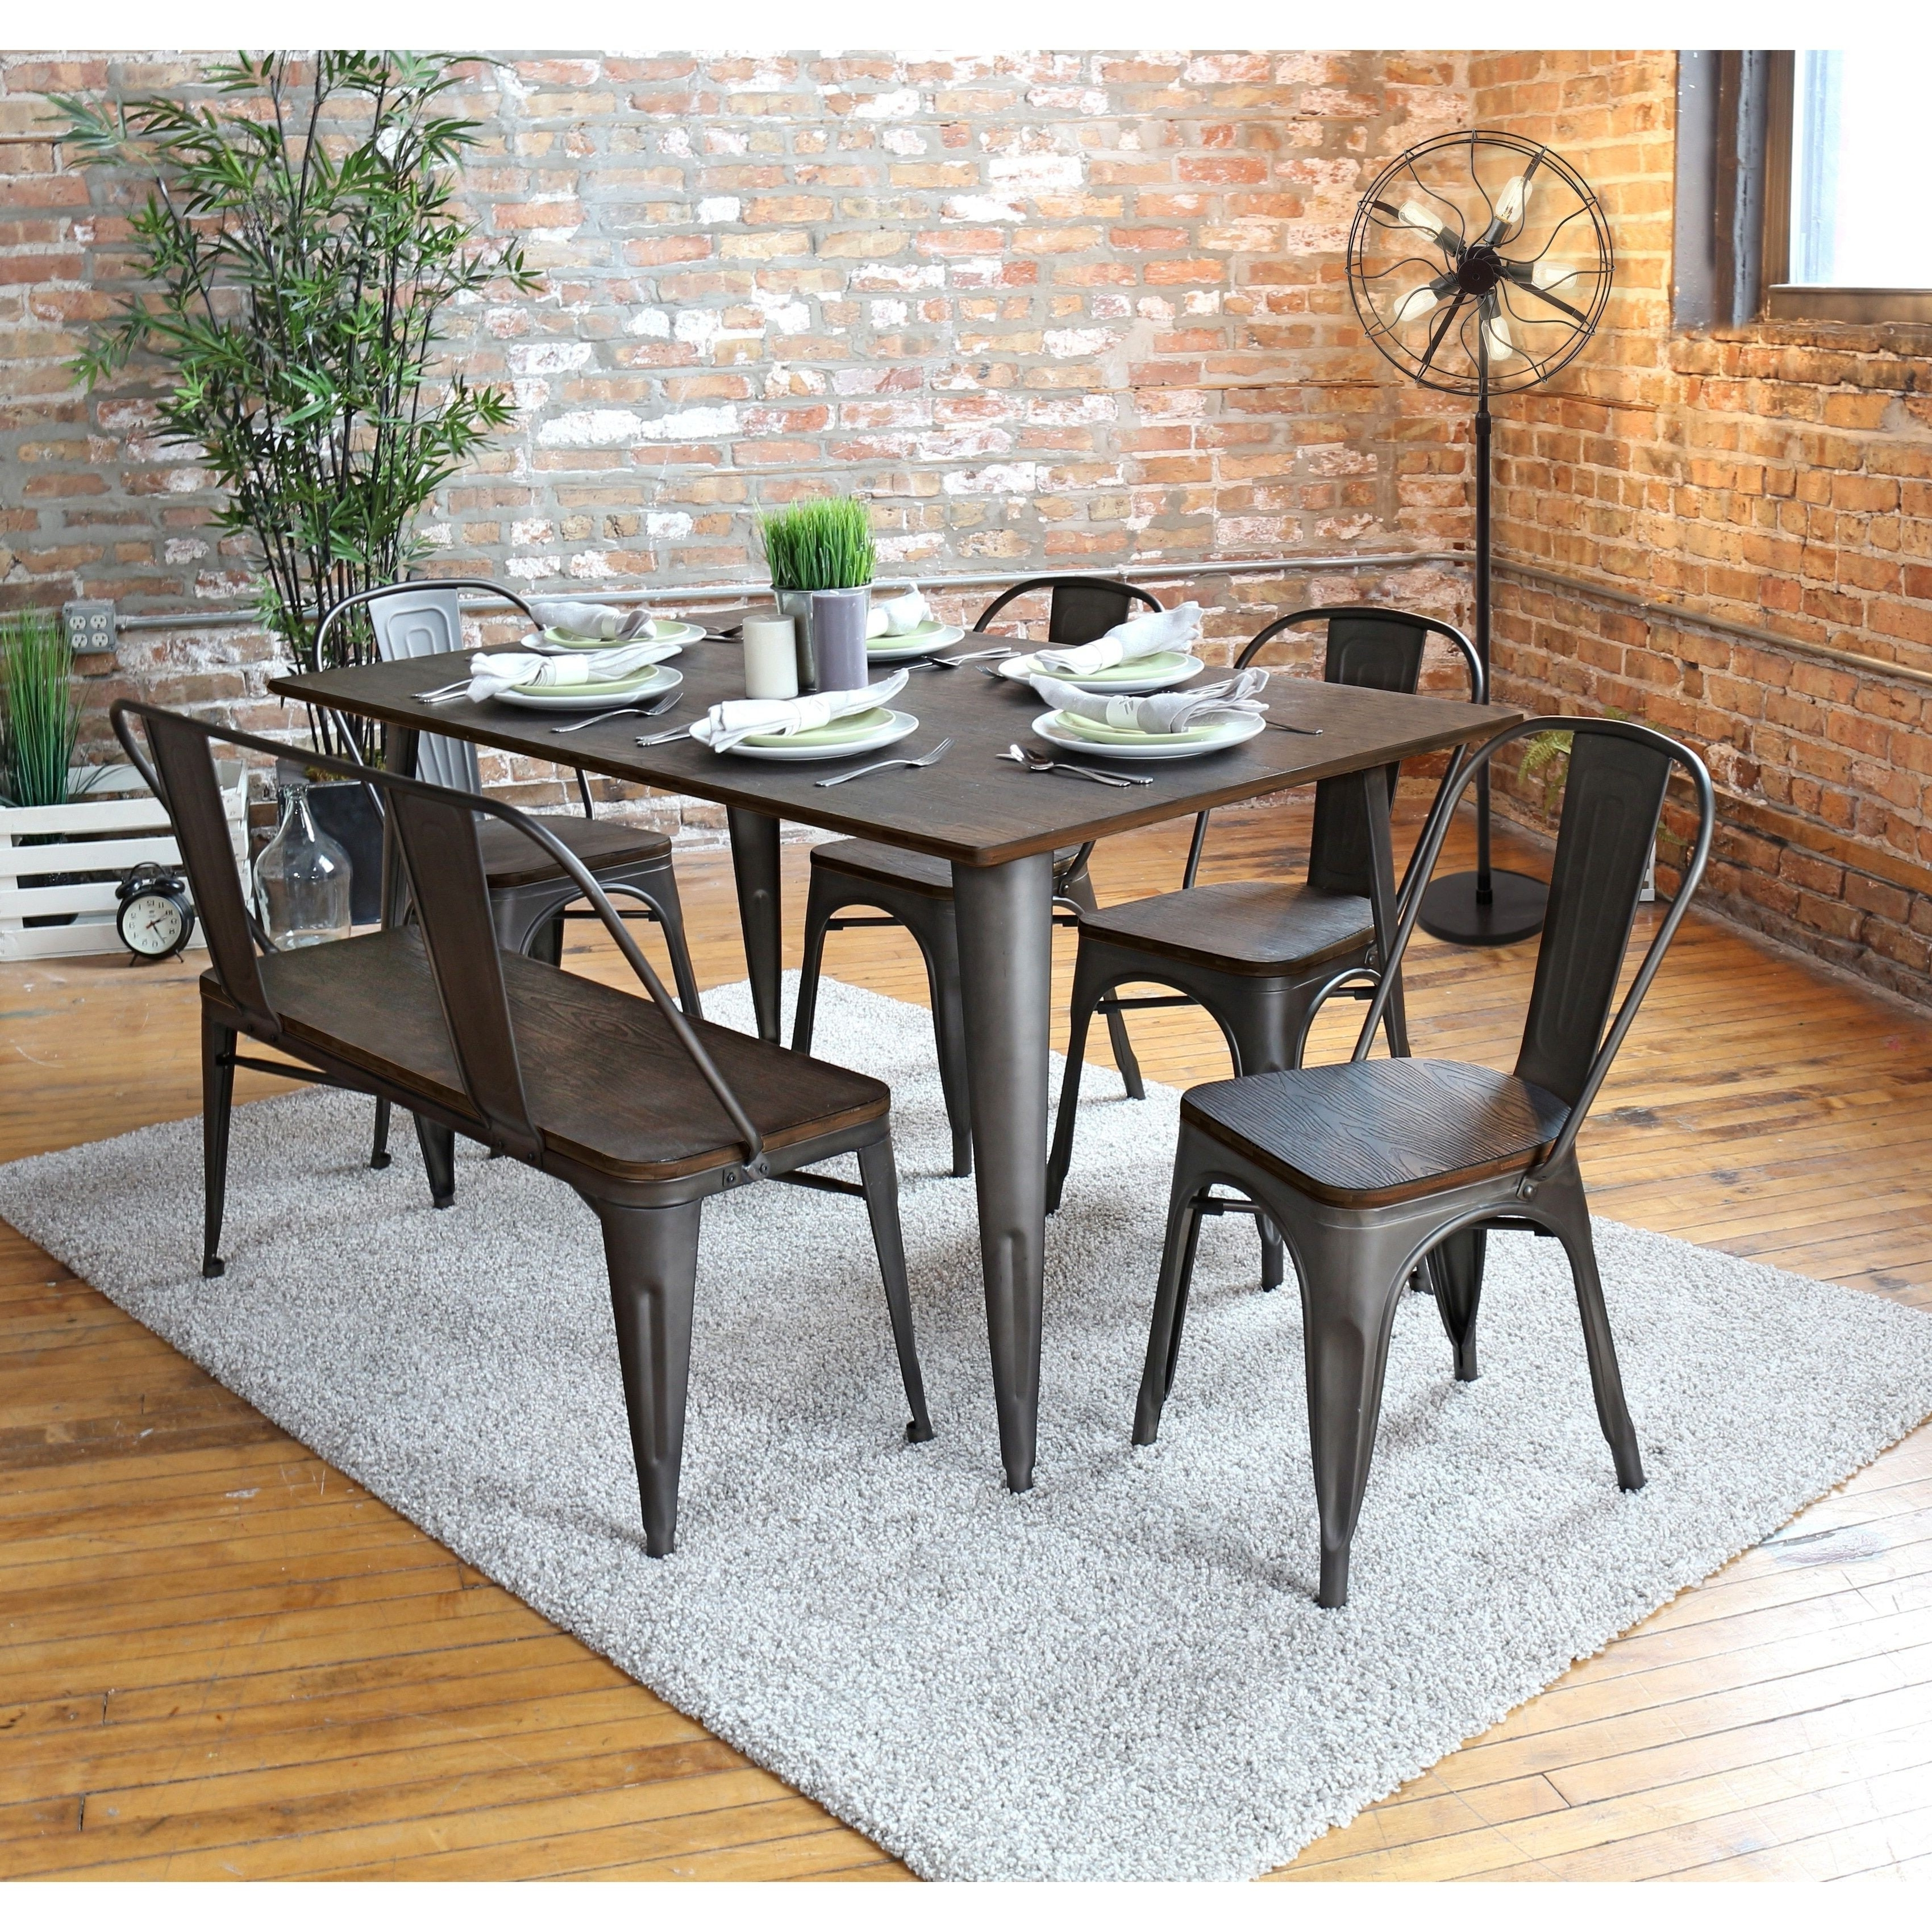 Well Known Jaxon Grey 5 Piece Round Extension Dining Sets With Upholstered Chairs For Ashton Round Pedestal Dining Table Elegant Kitchen Dining Area (View 12 of 25)